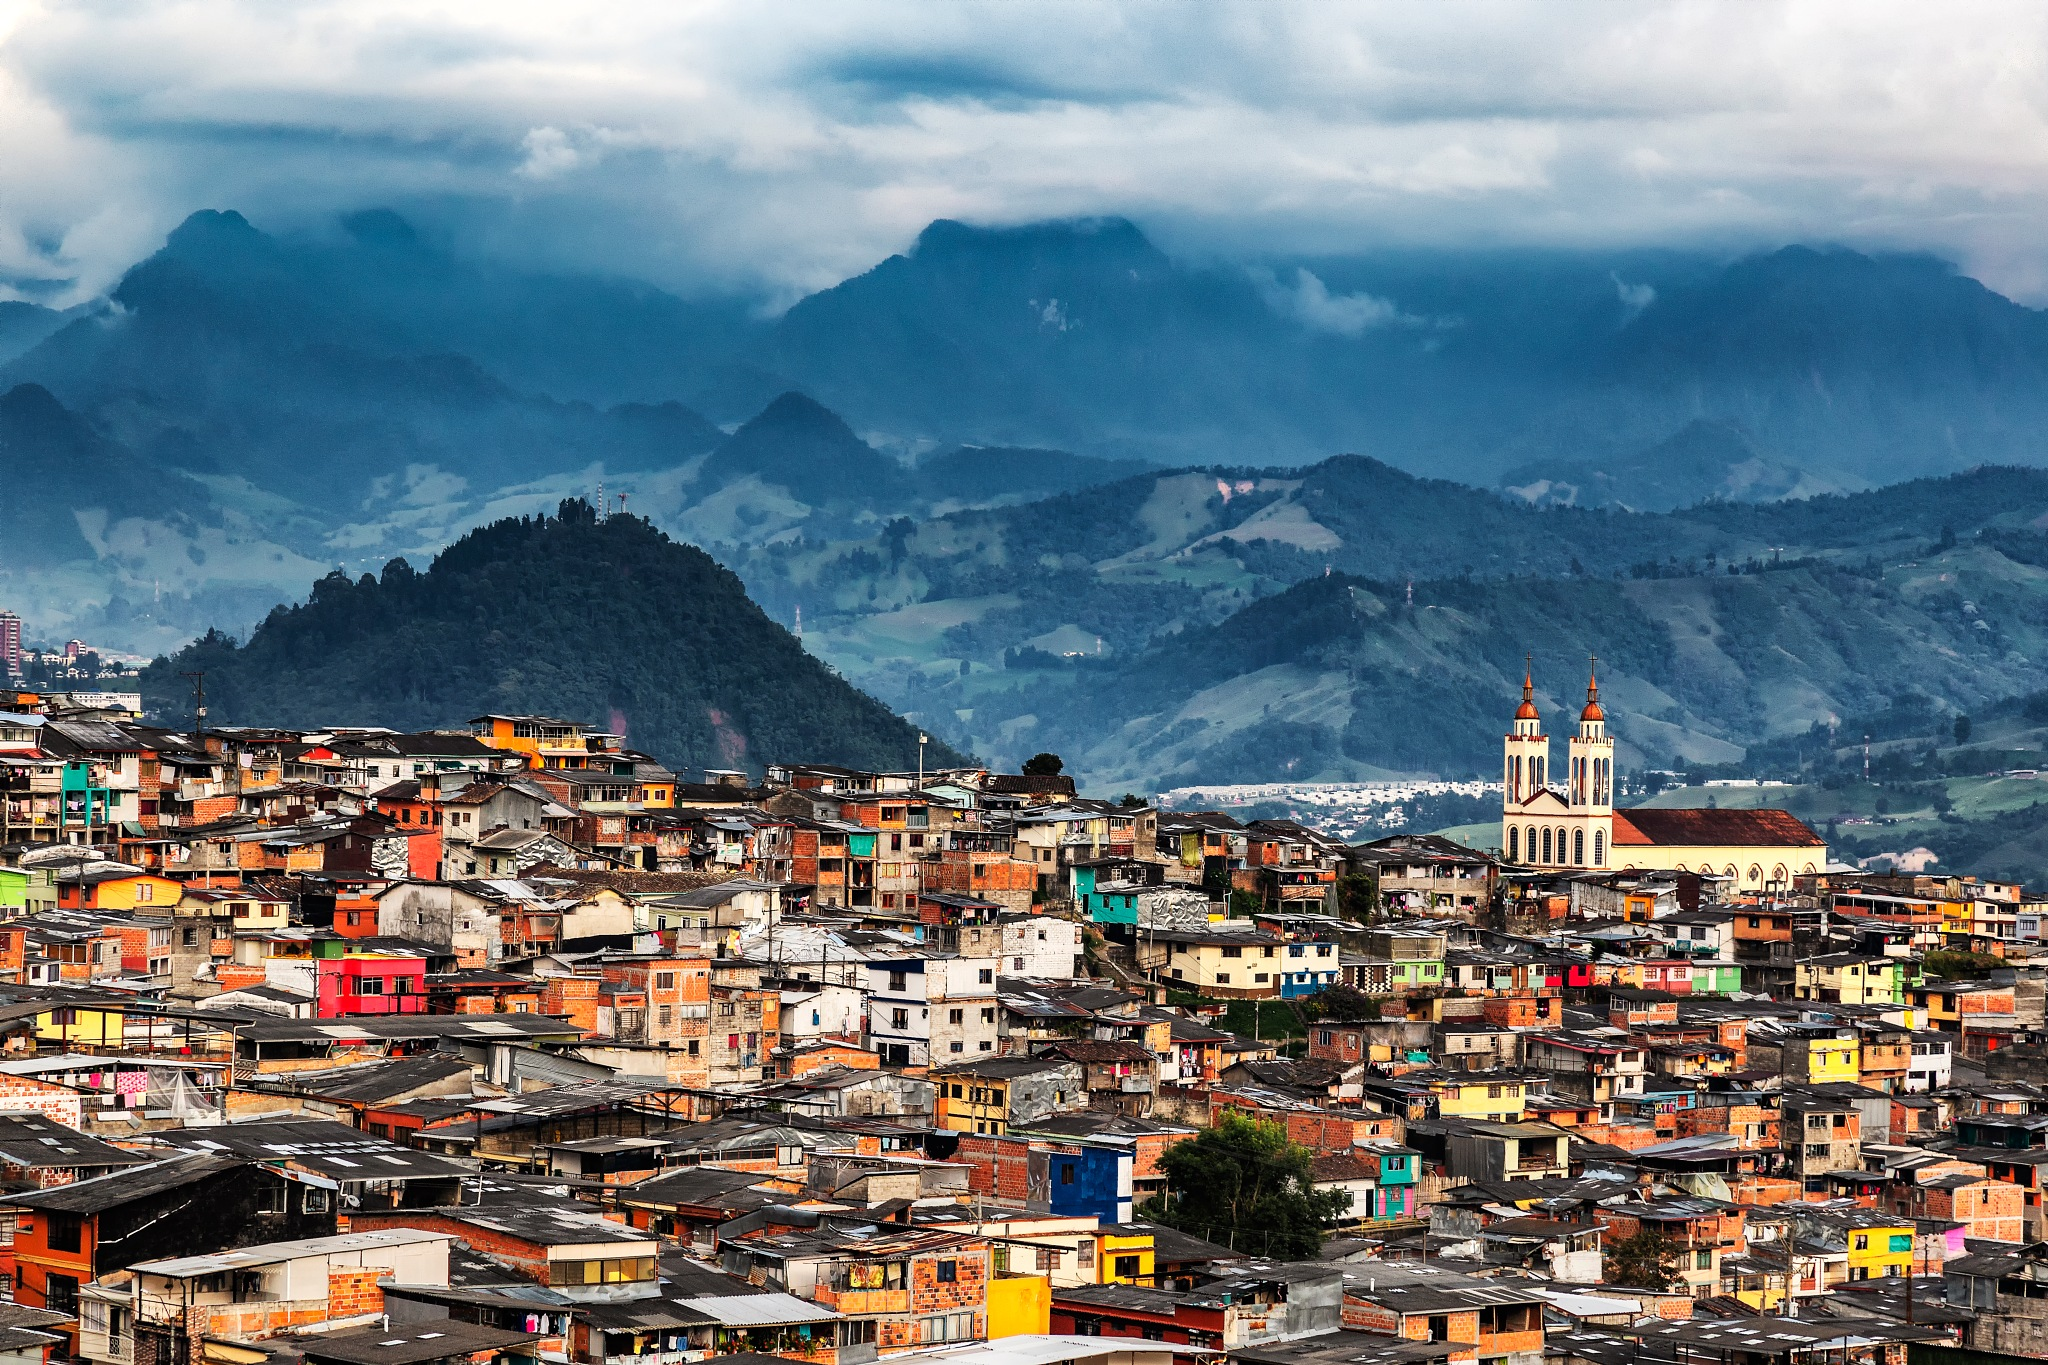 A town in the mountains of Colombia by Charly Boillot